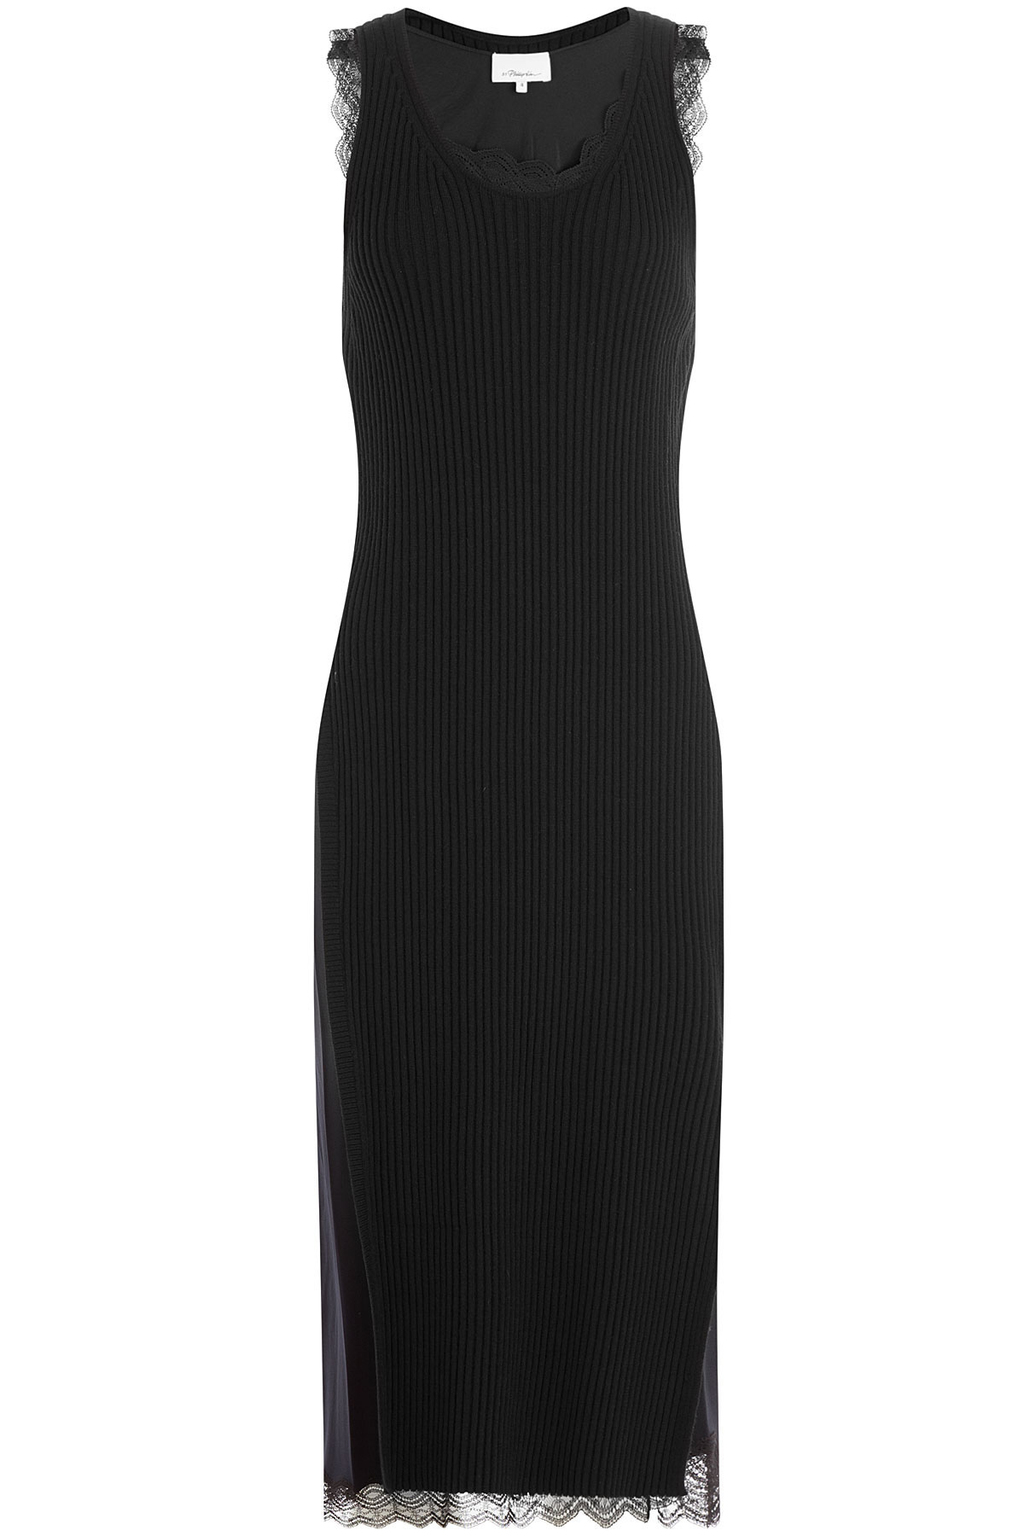 Ribbed Wool Blend Dress With Lace Blue - neckline: round neck; pattern: plain; sleeve style: sleeveless; style: maxi dress; length: ankle length; predominant colour: navy; occasions: evening; fit: body skimming; fibres: wool - mix; sleeve length: sleeveless; texture group: silky - light; pattern type: fabric; season: s/s 2016